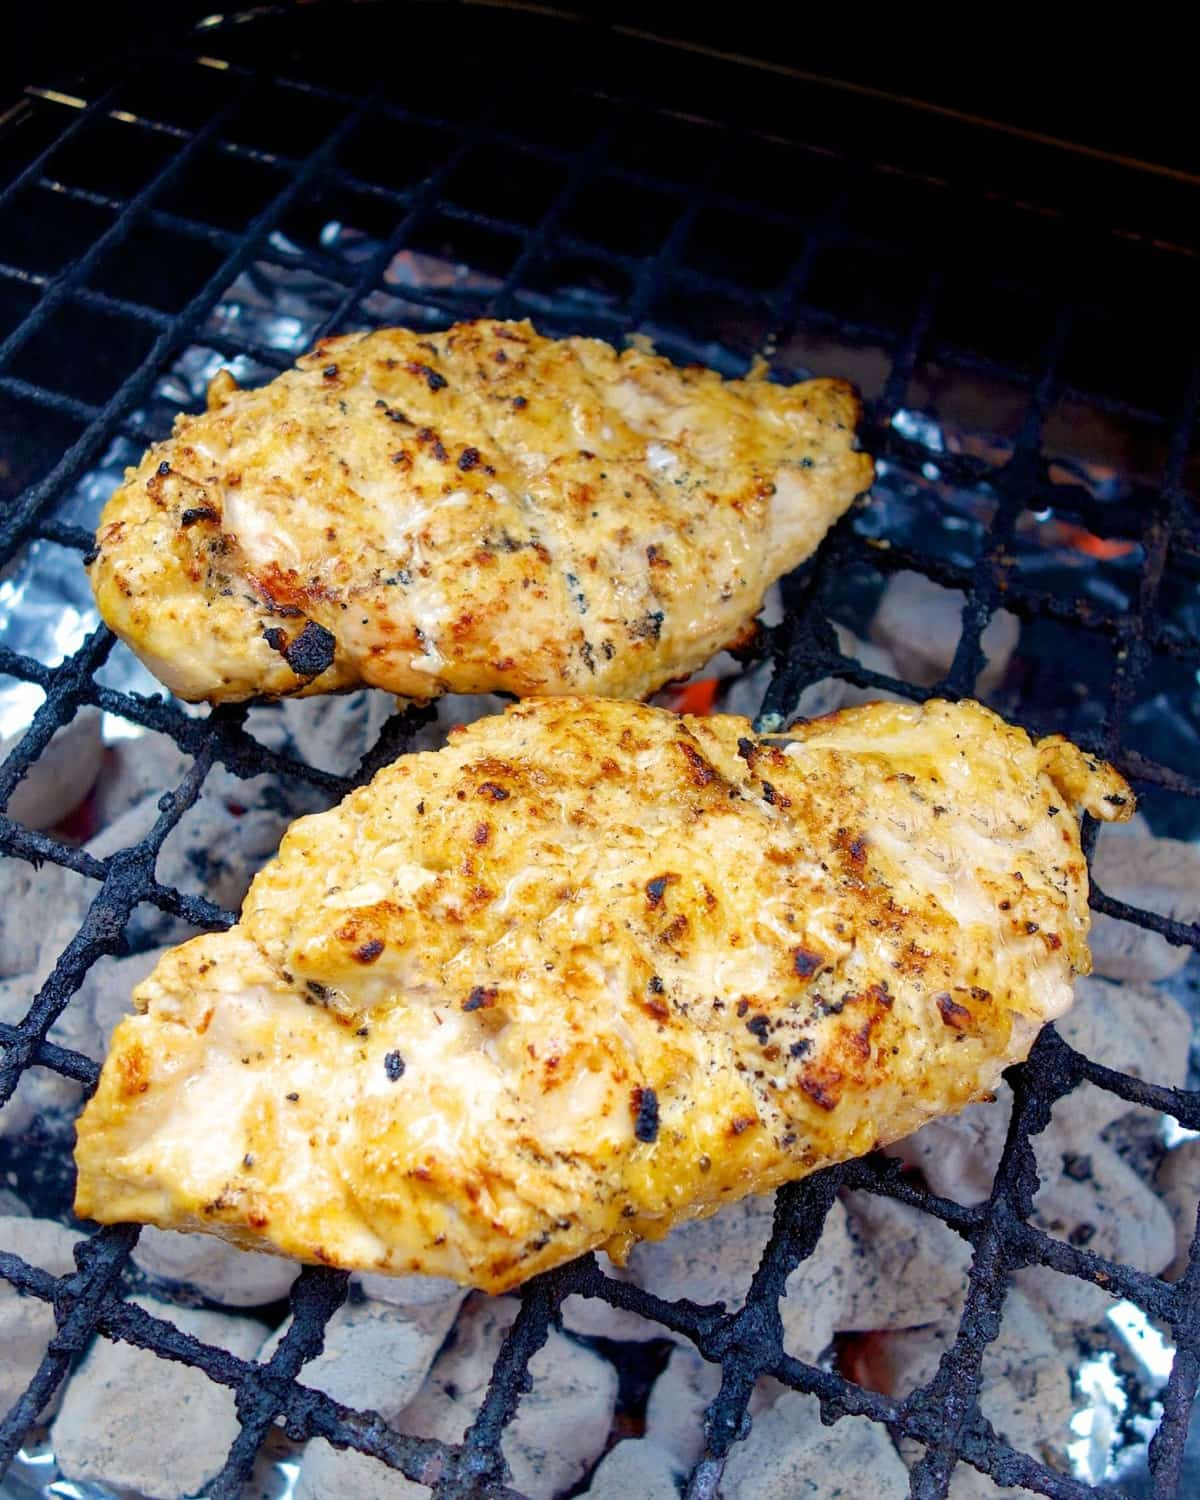 Lemon Garlic Marinade - our favorite! SO simple and SOOO delicious! Chicken marinated in olive oil, dijon mustard, garlic, salt, pepper and lemons. Everyone raves about this chicken!! TONS of flavor!